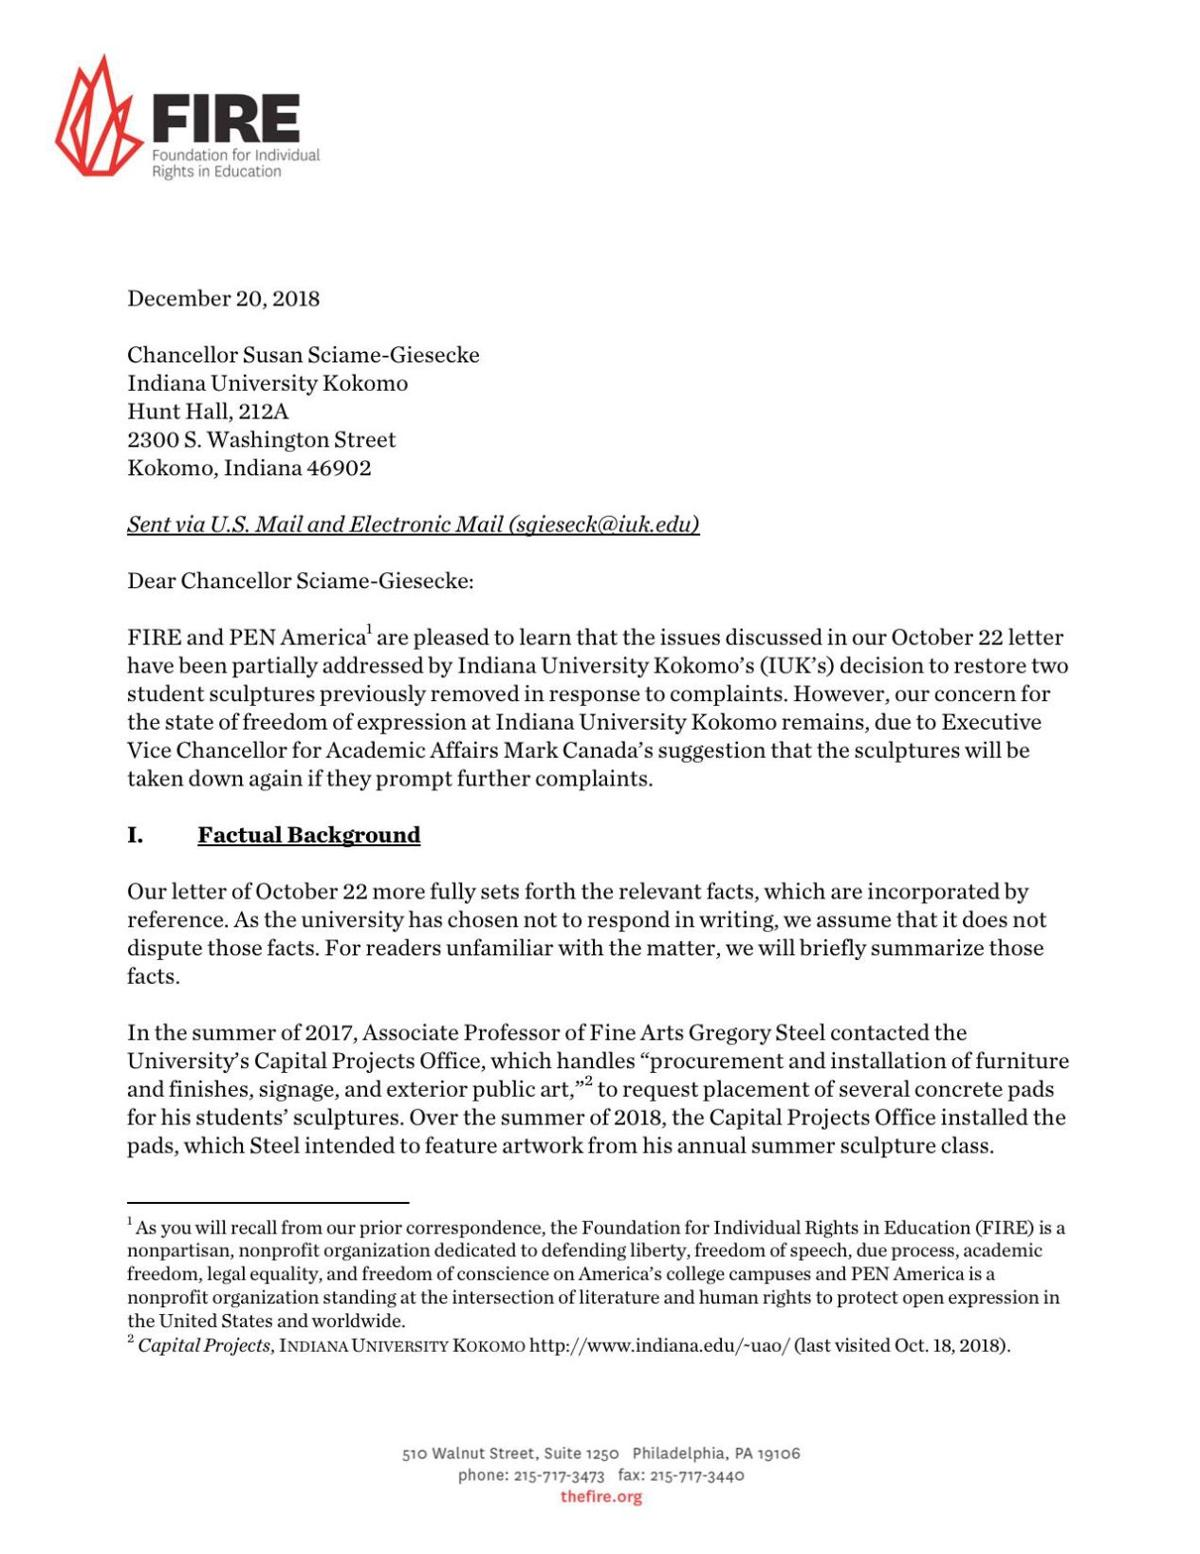 Dec. 20 letter from FIRE and PEN America